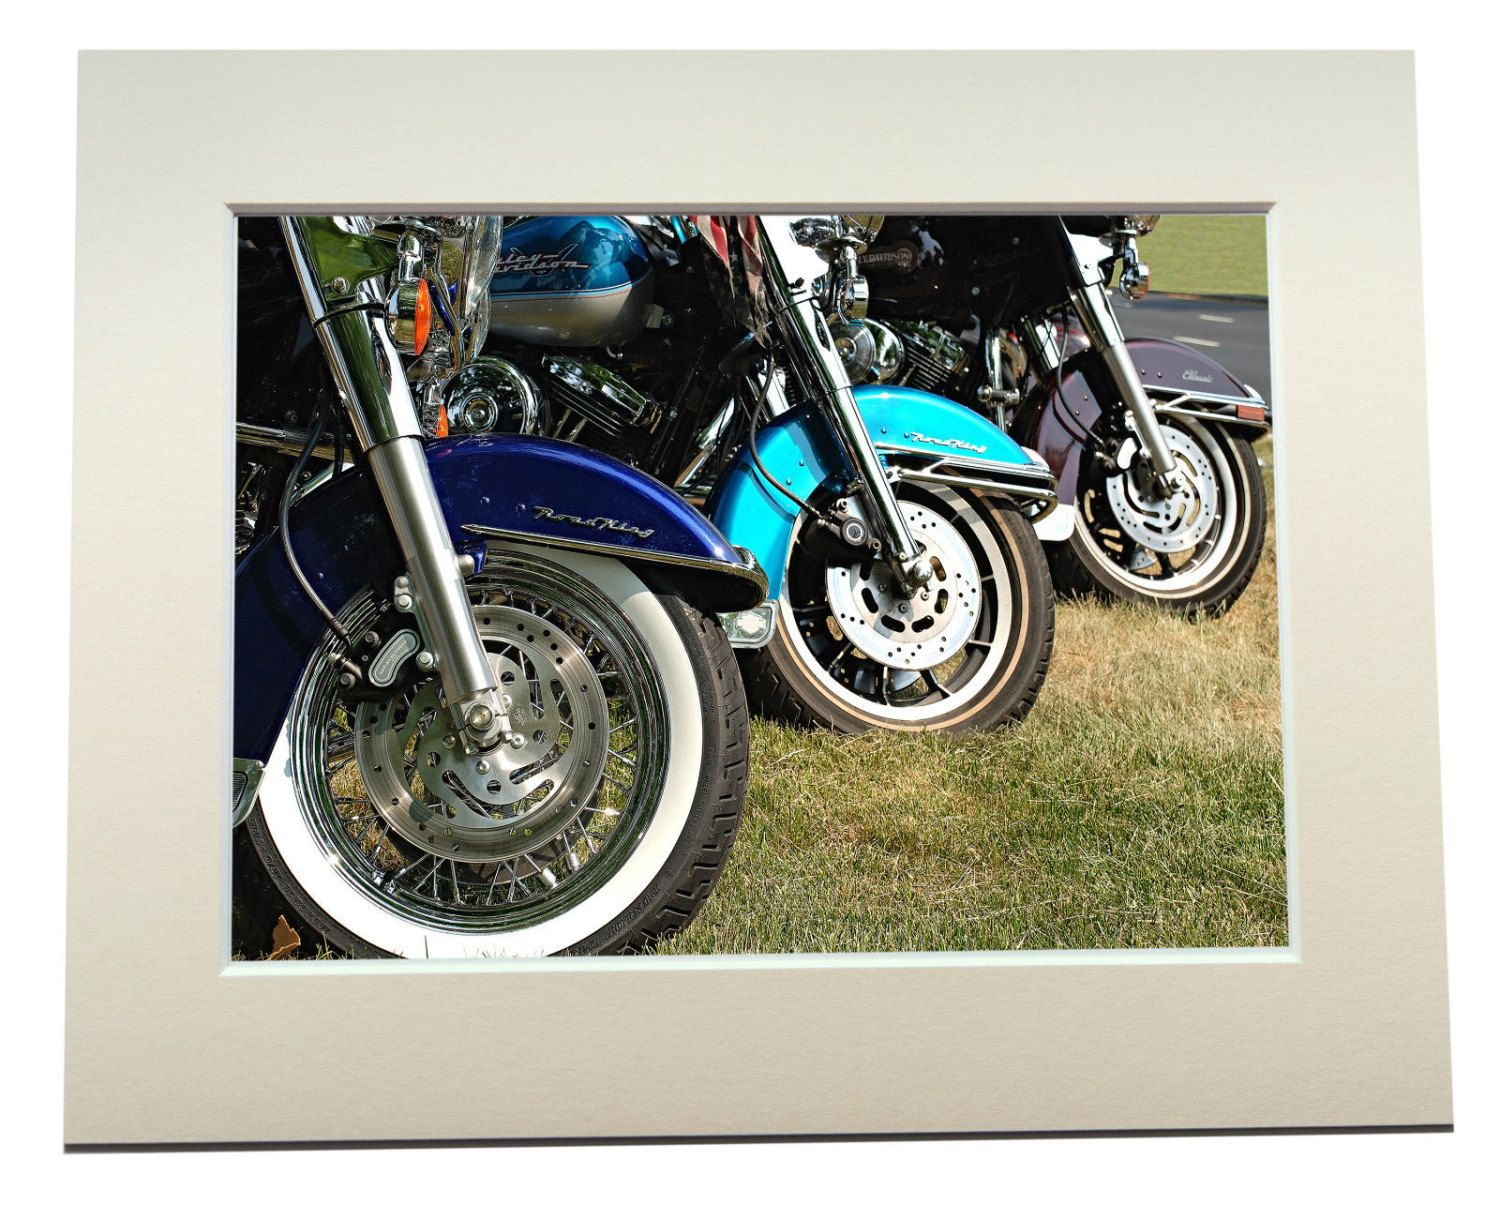 Harley Davidson Motorcycles Photographic Print Signed Limited Edition Mounted by TimeToCreateCrafts on Etsy